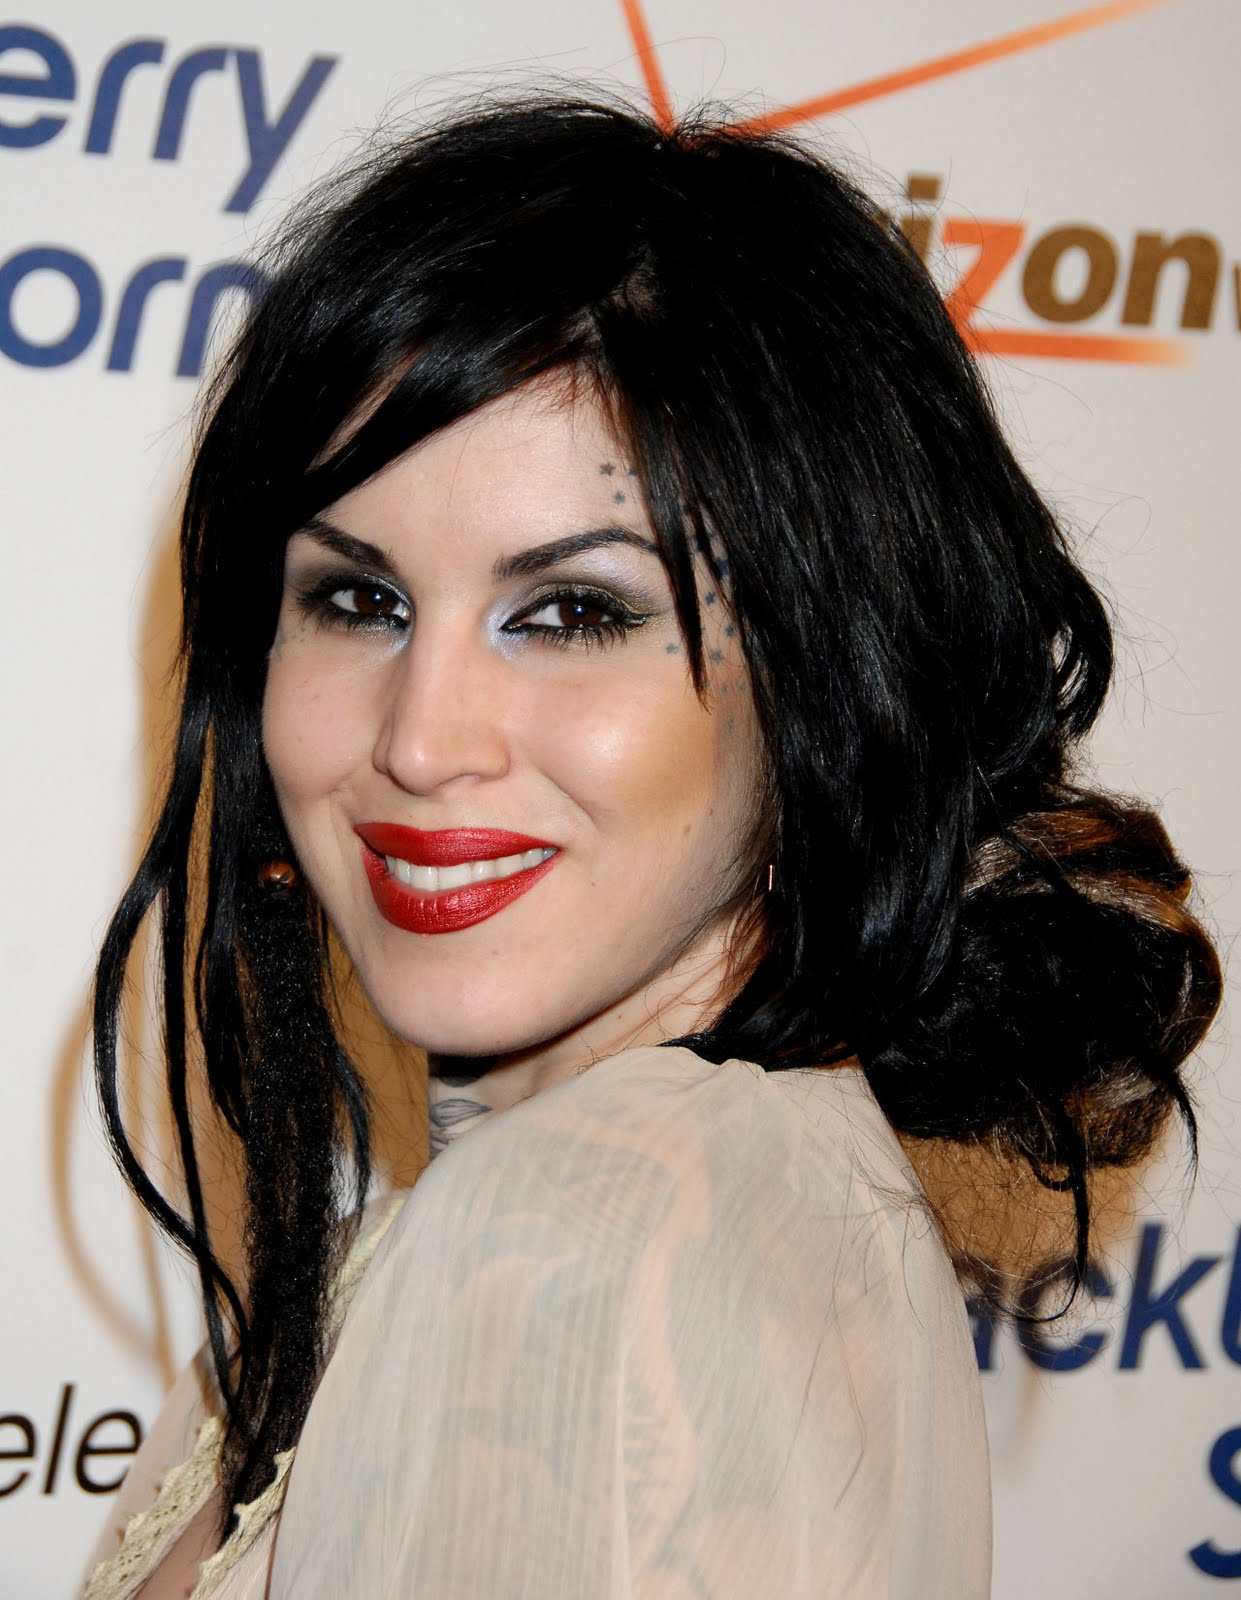 Kat Von D | Kat Von D Launches Clothing Line | Contactmusic